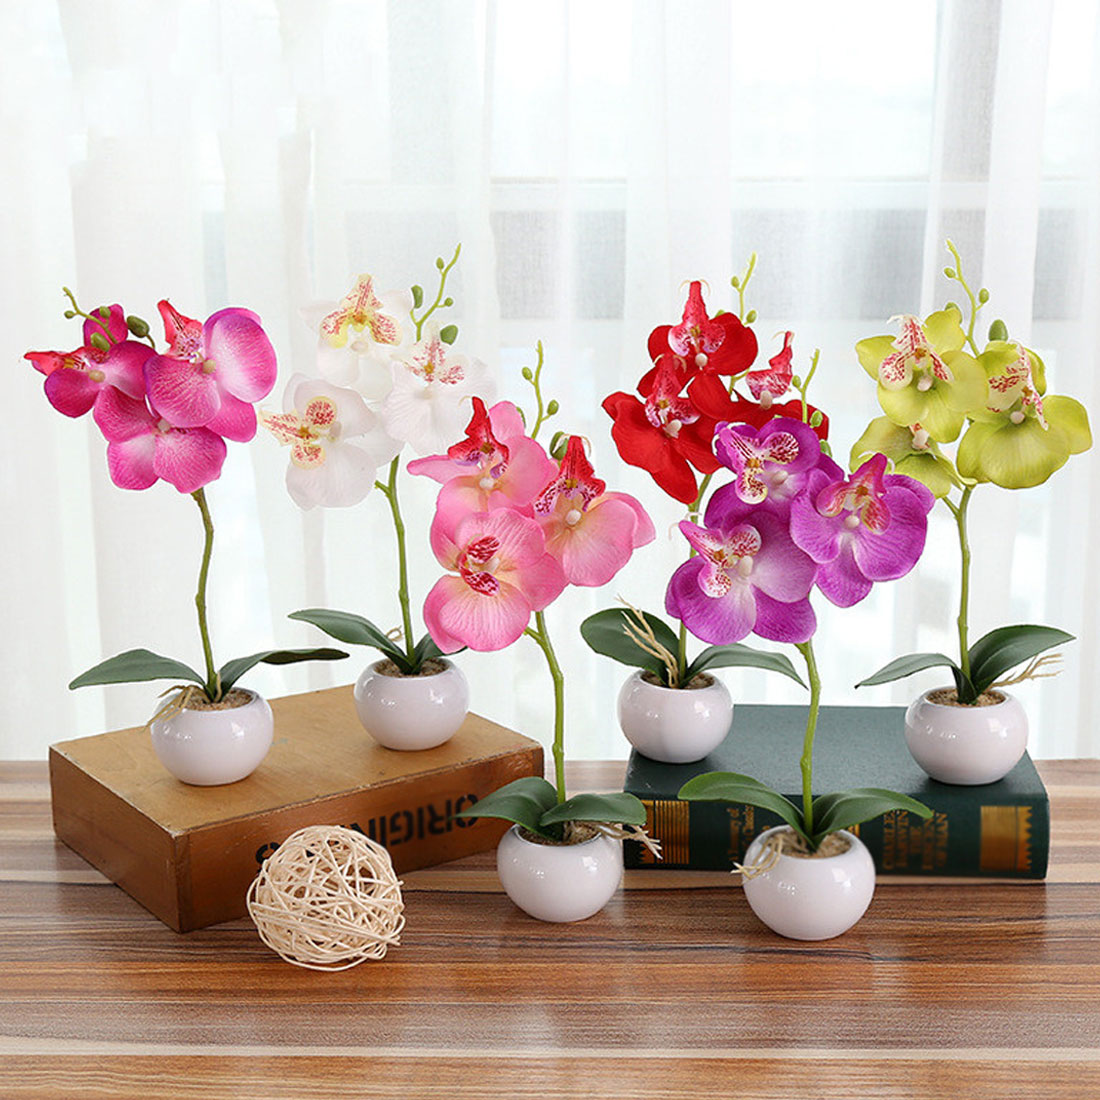 Average Cost Of Wedding Flowers 2014: Home Decoration Ornamental Flores Butterfly Orchid